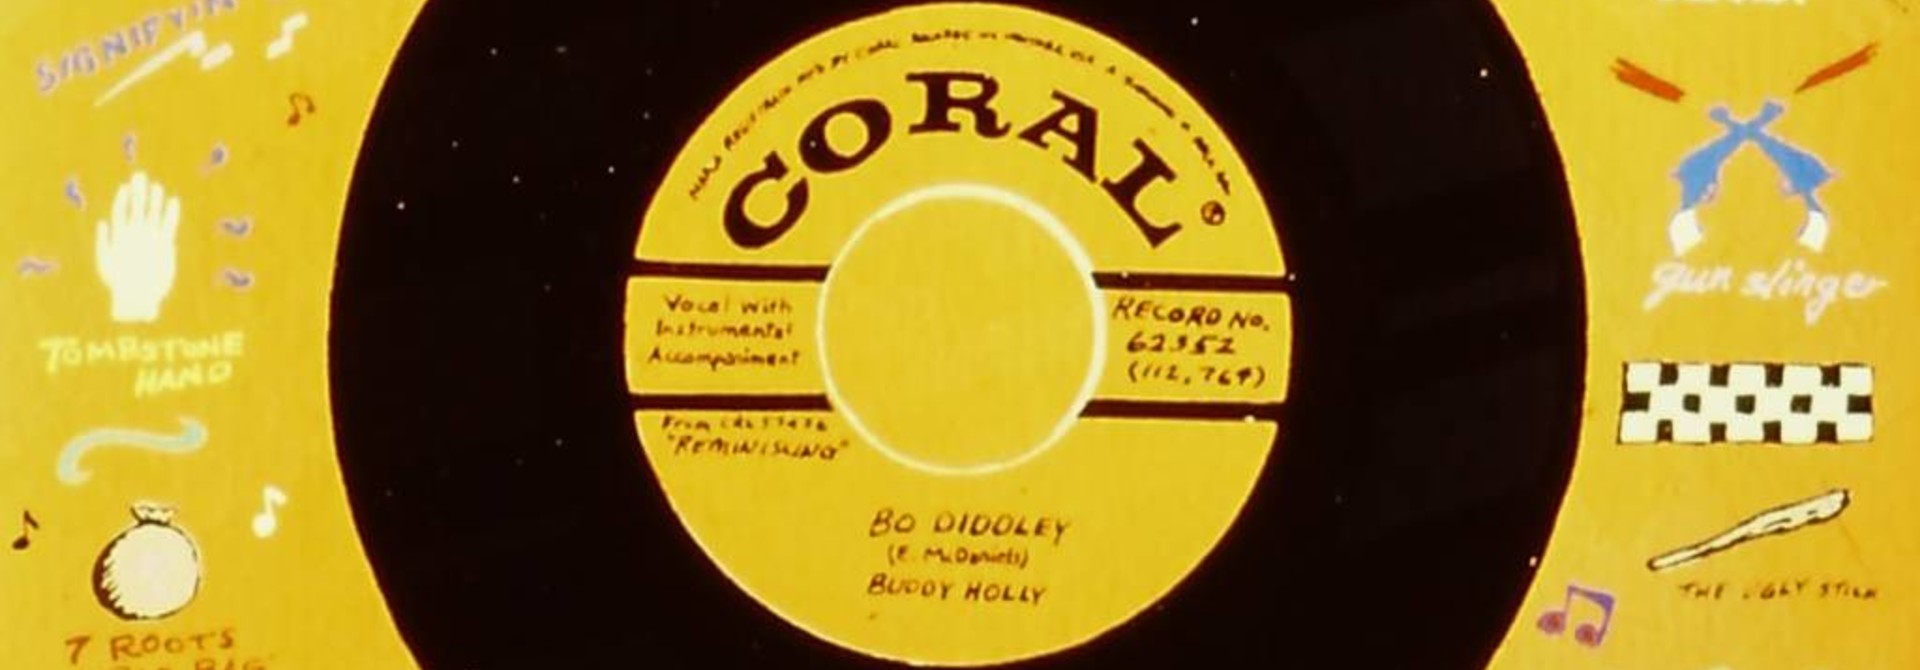 Bo Diddley by Buddy Holly